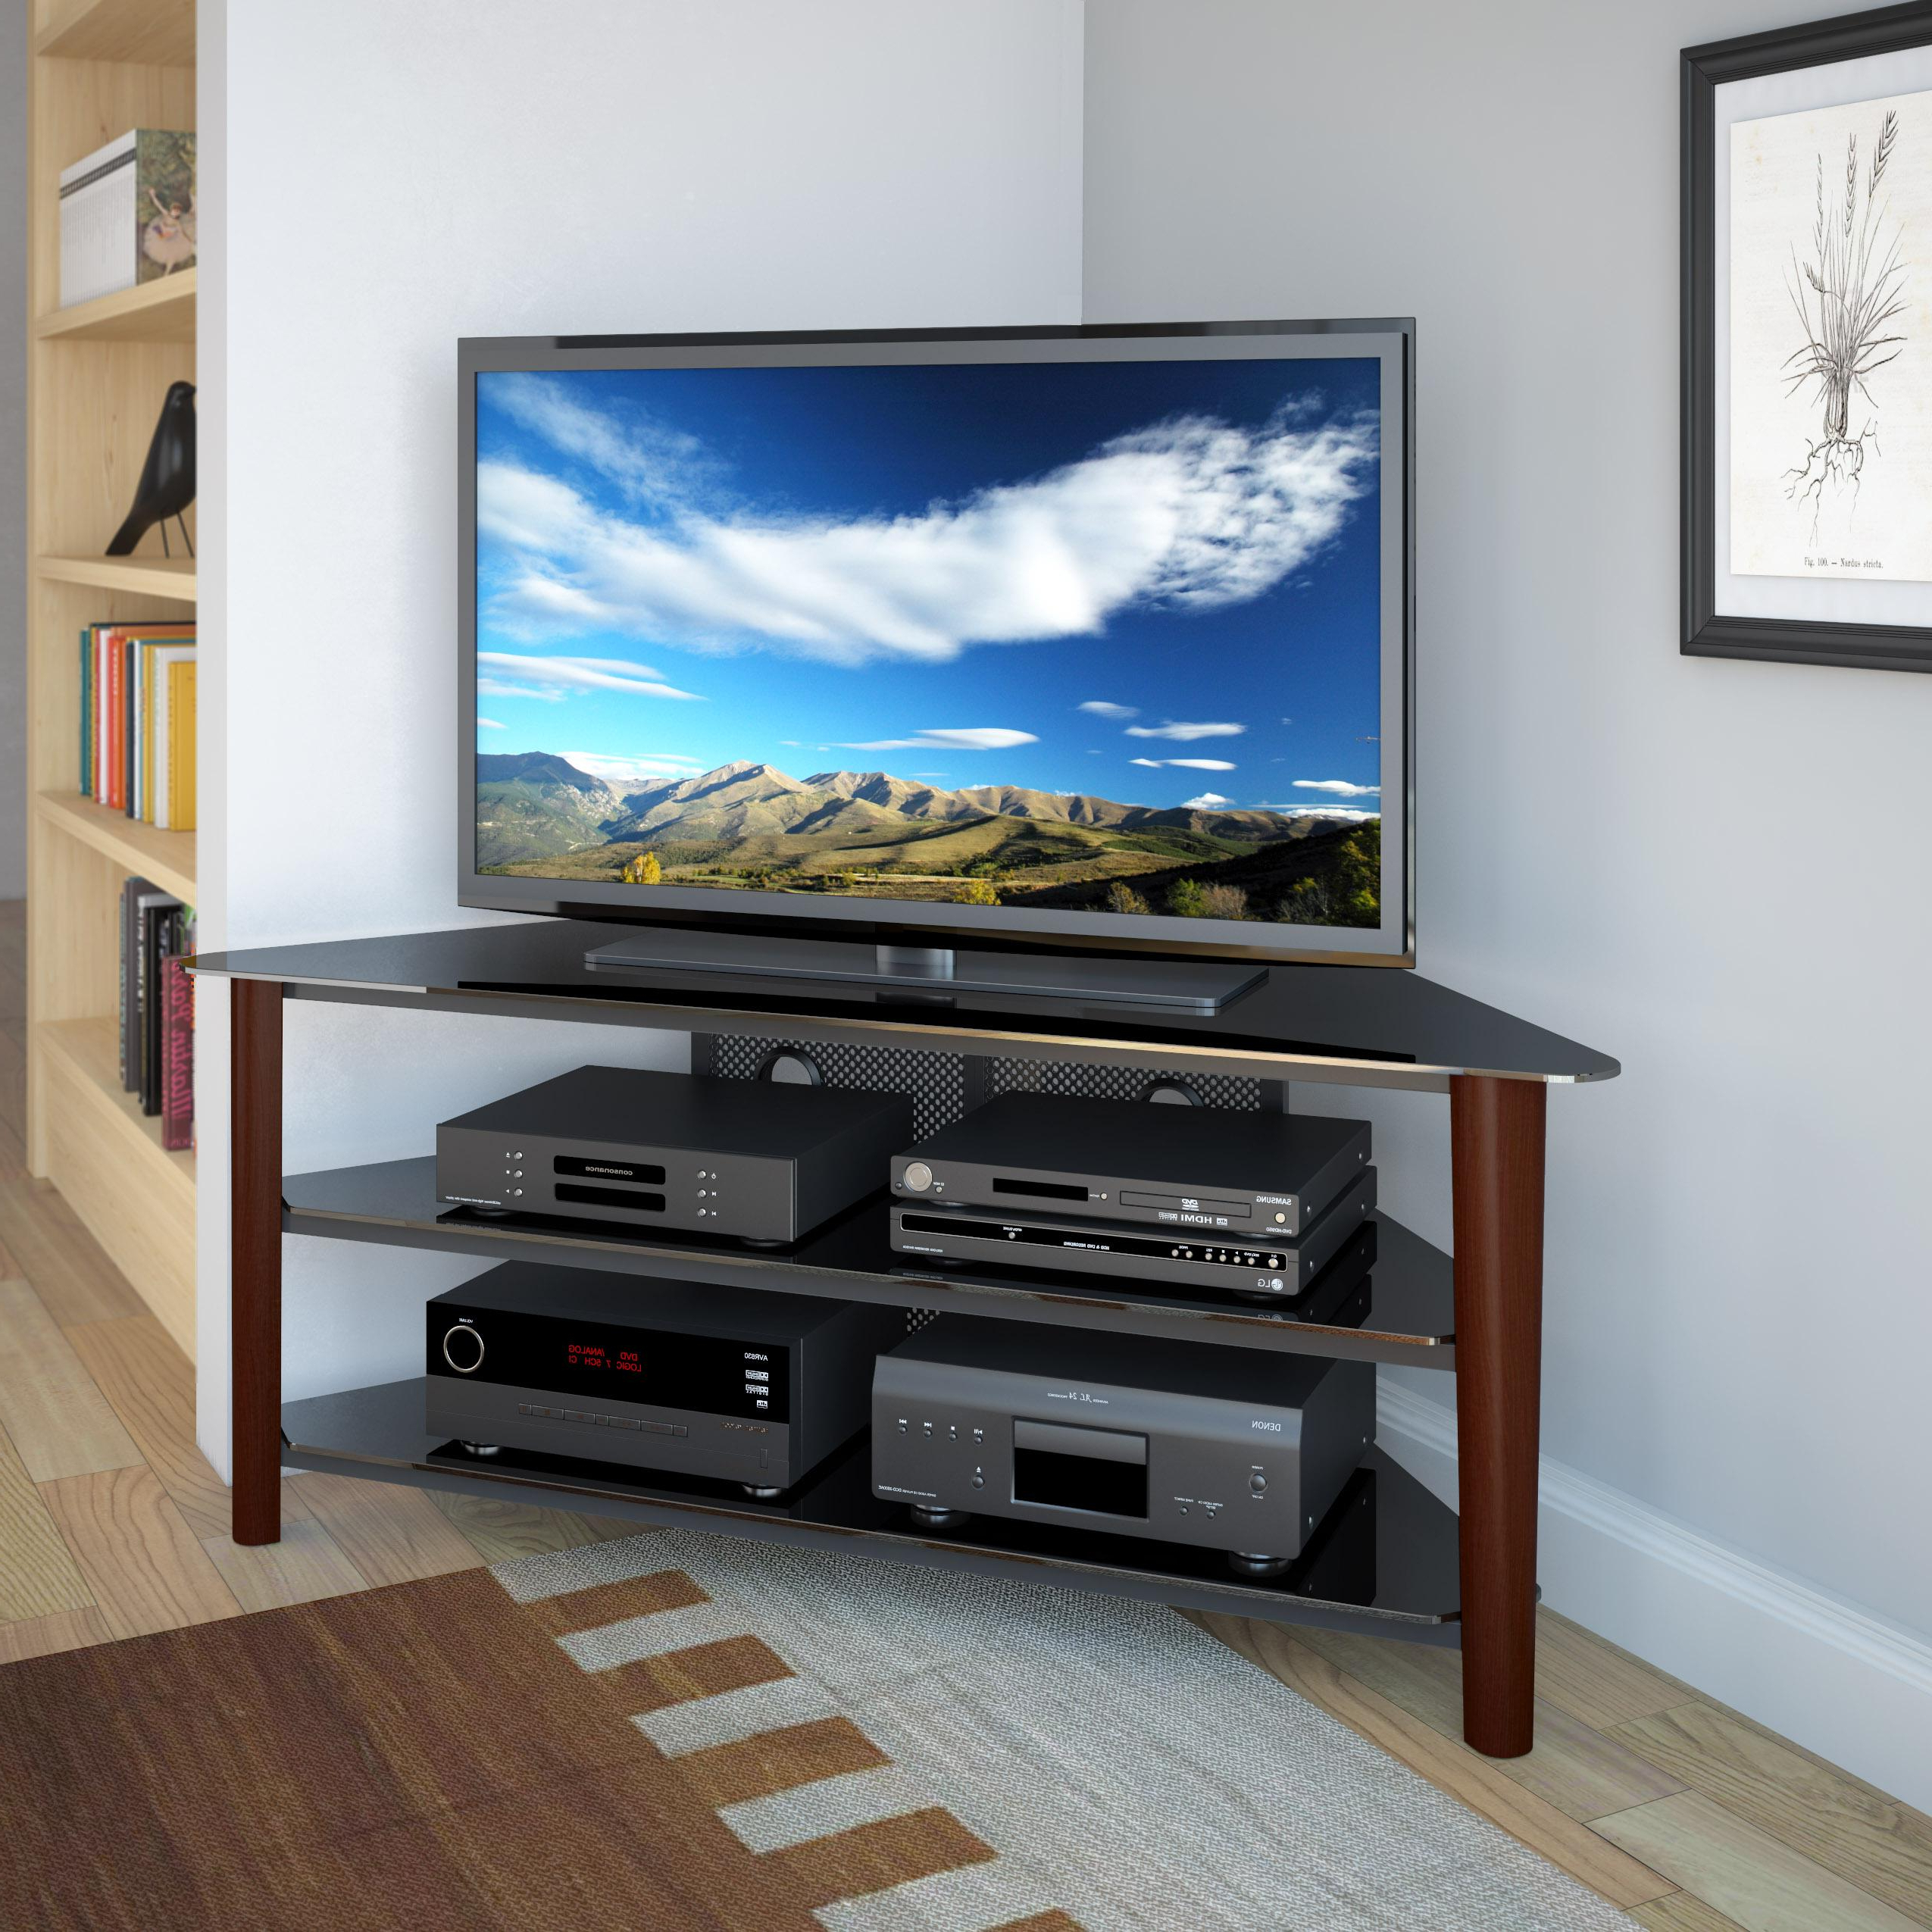 """Amazon: Corliving Tal 694 T Alturas Veneer Tv Stand Inside Current Ahana Tv Stands For Tvs Up To 60"""" (View 14 of 25)"""